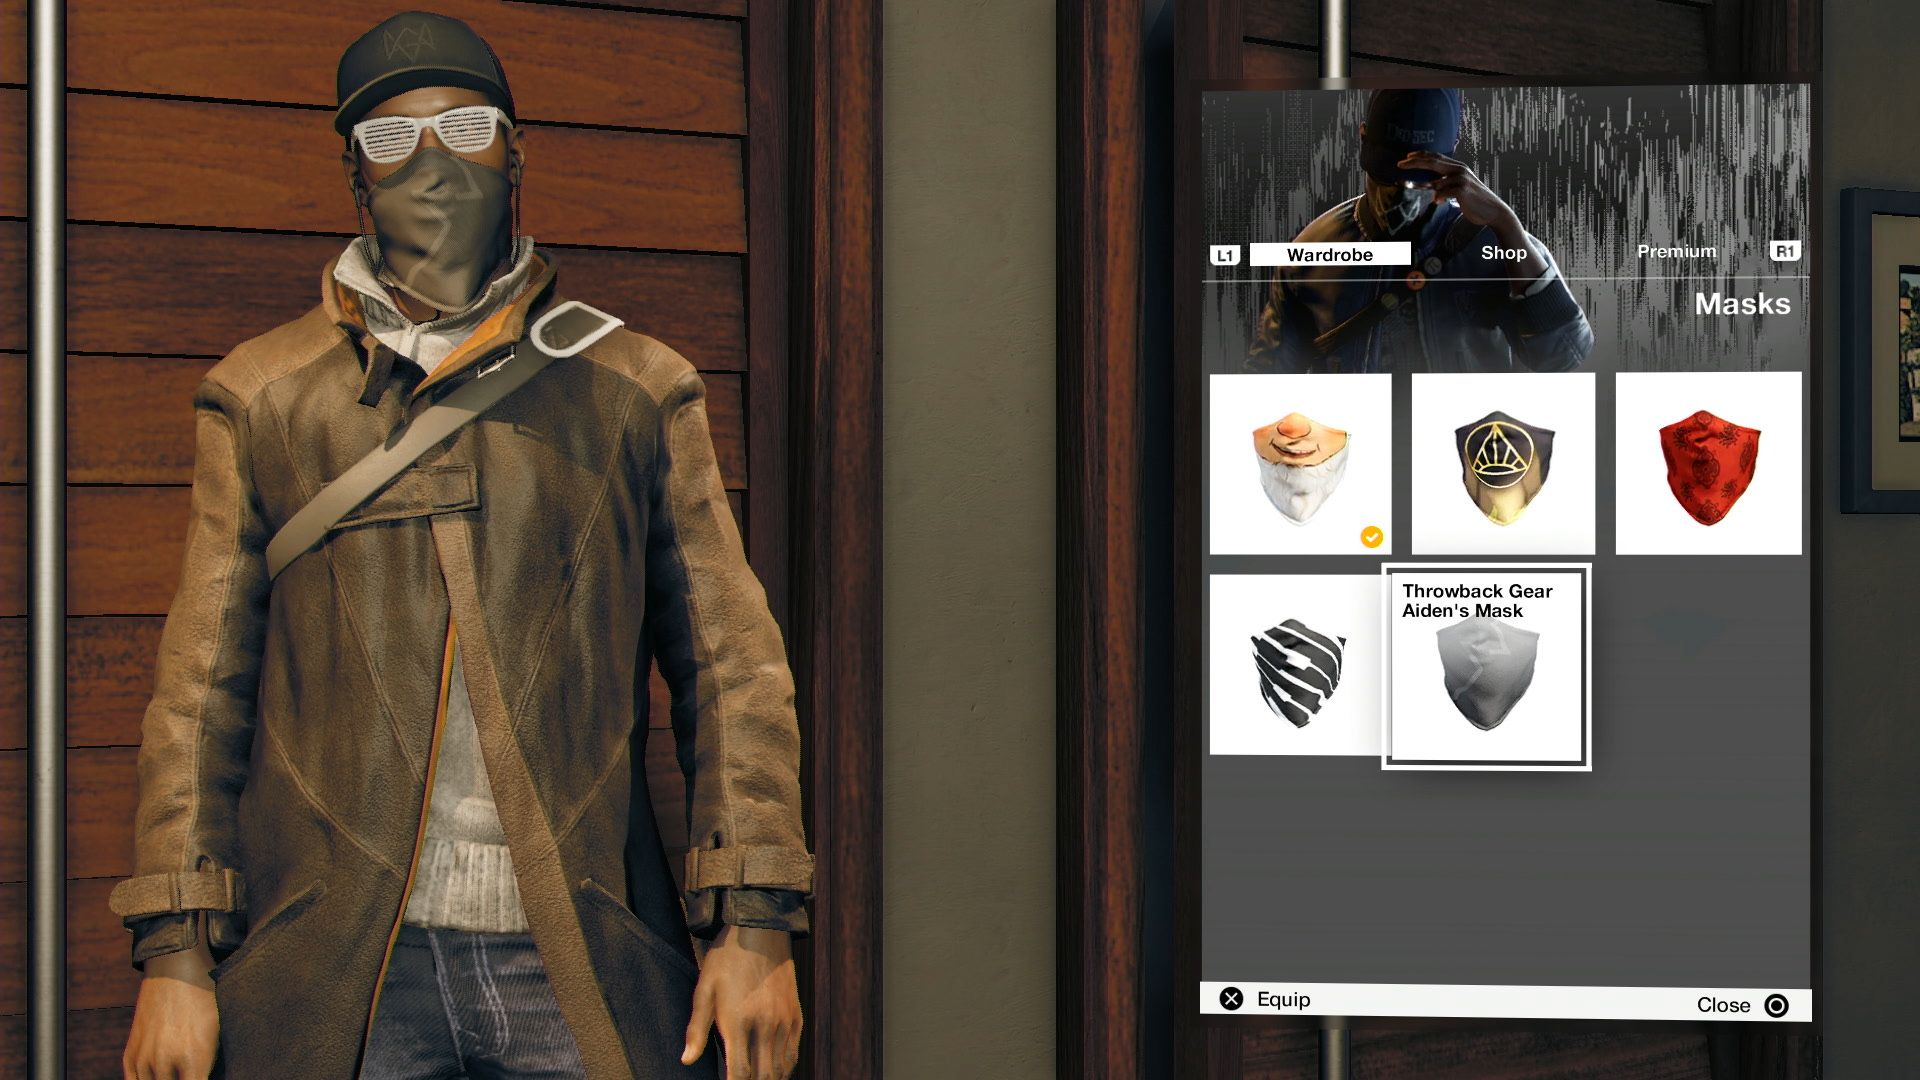 Watch dogs wiki shuffler